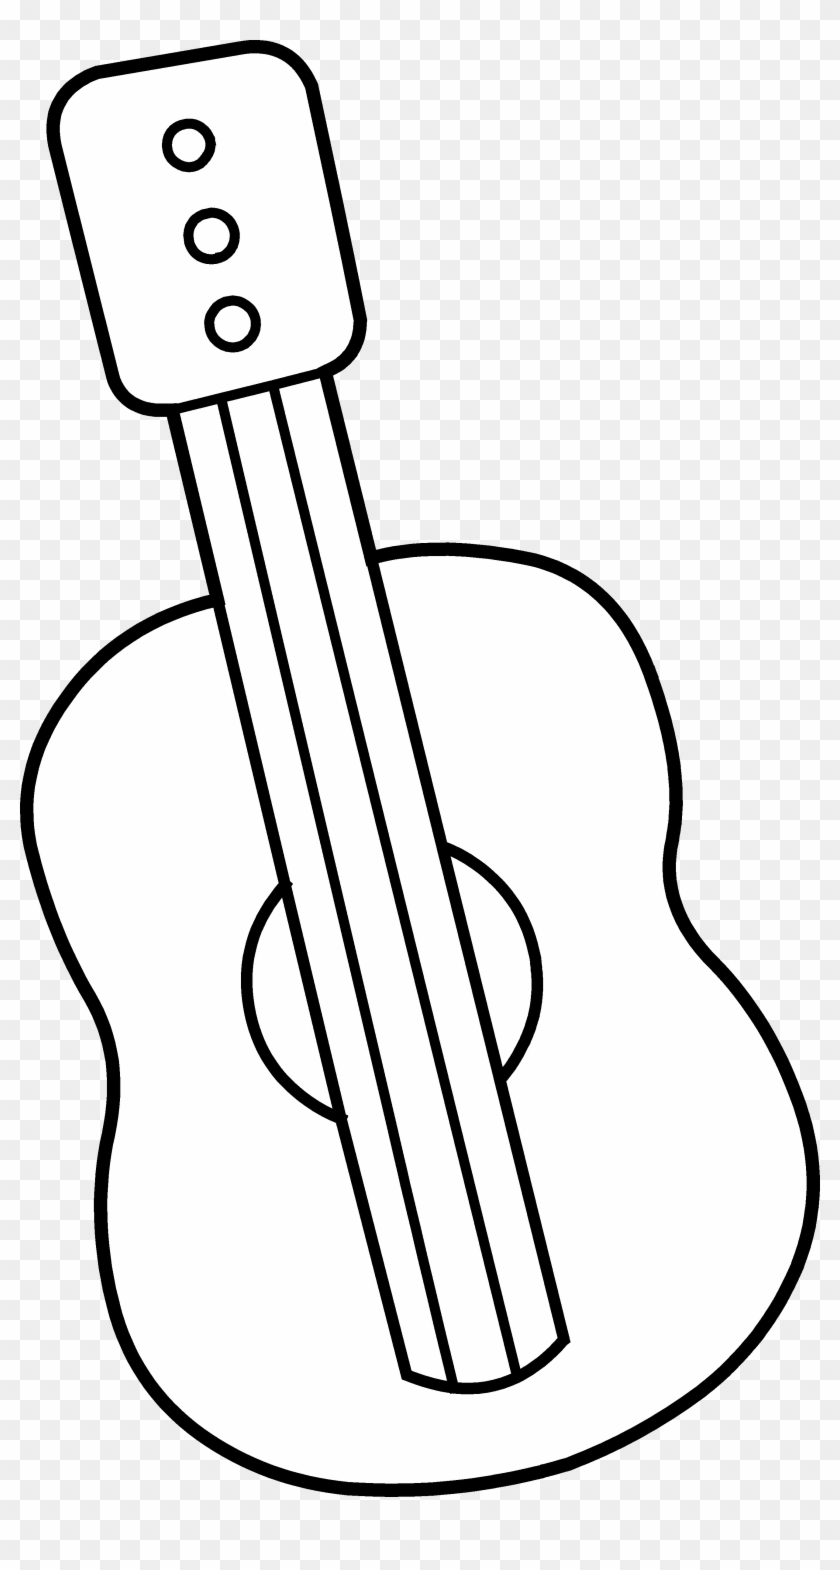 Black Guitar Black And White Cartoons Free Transparent Png Clipart Images Download